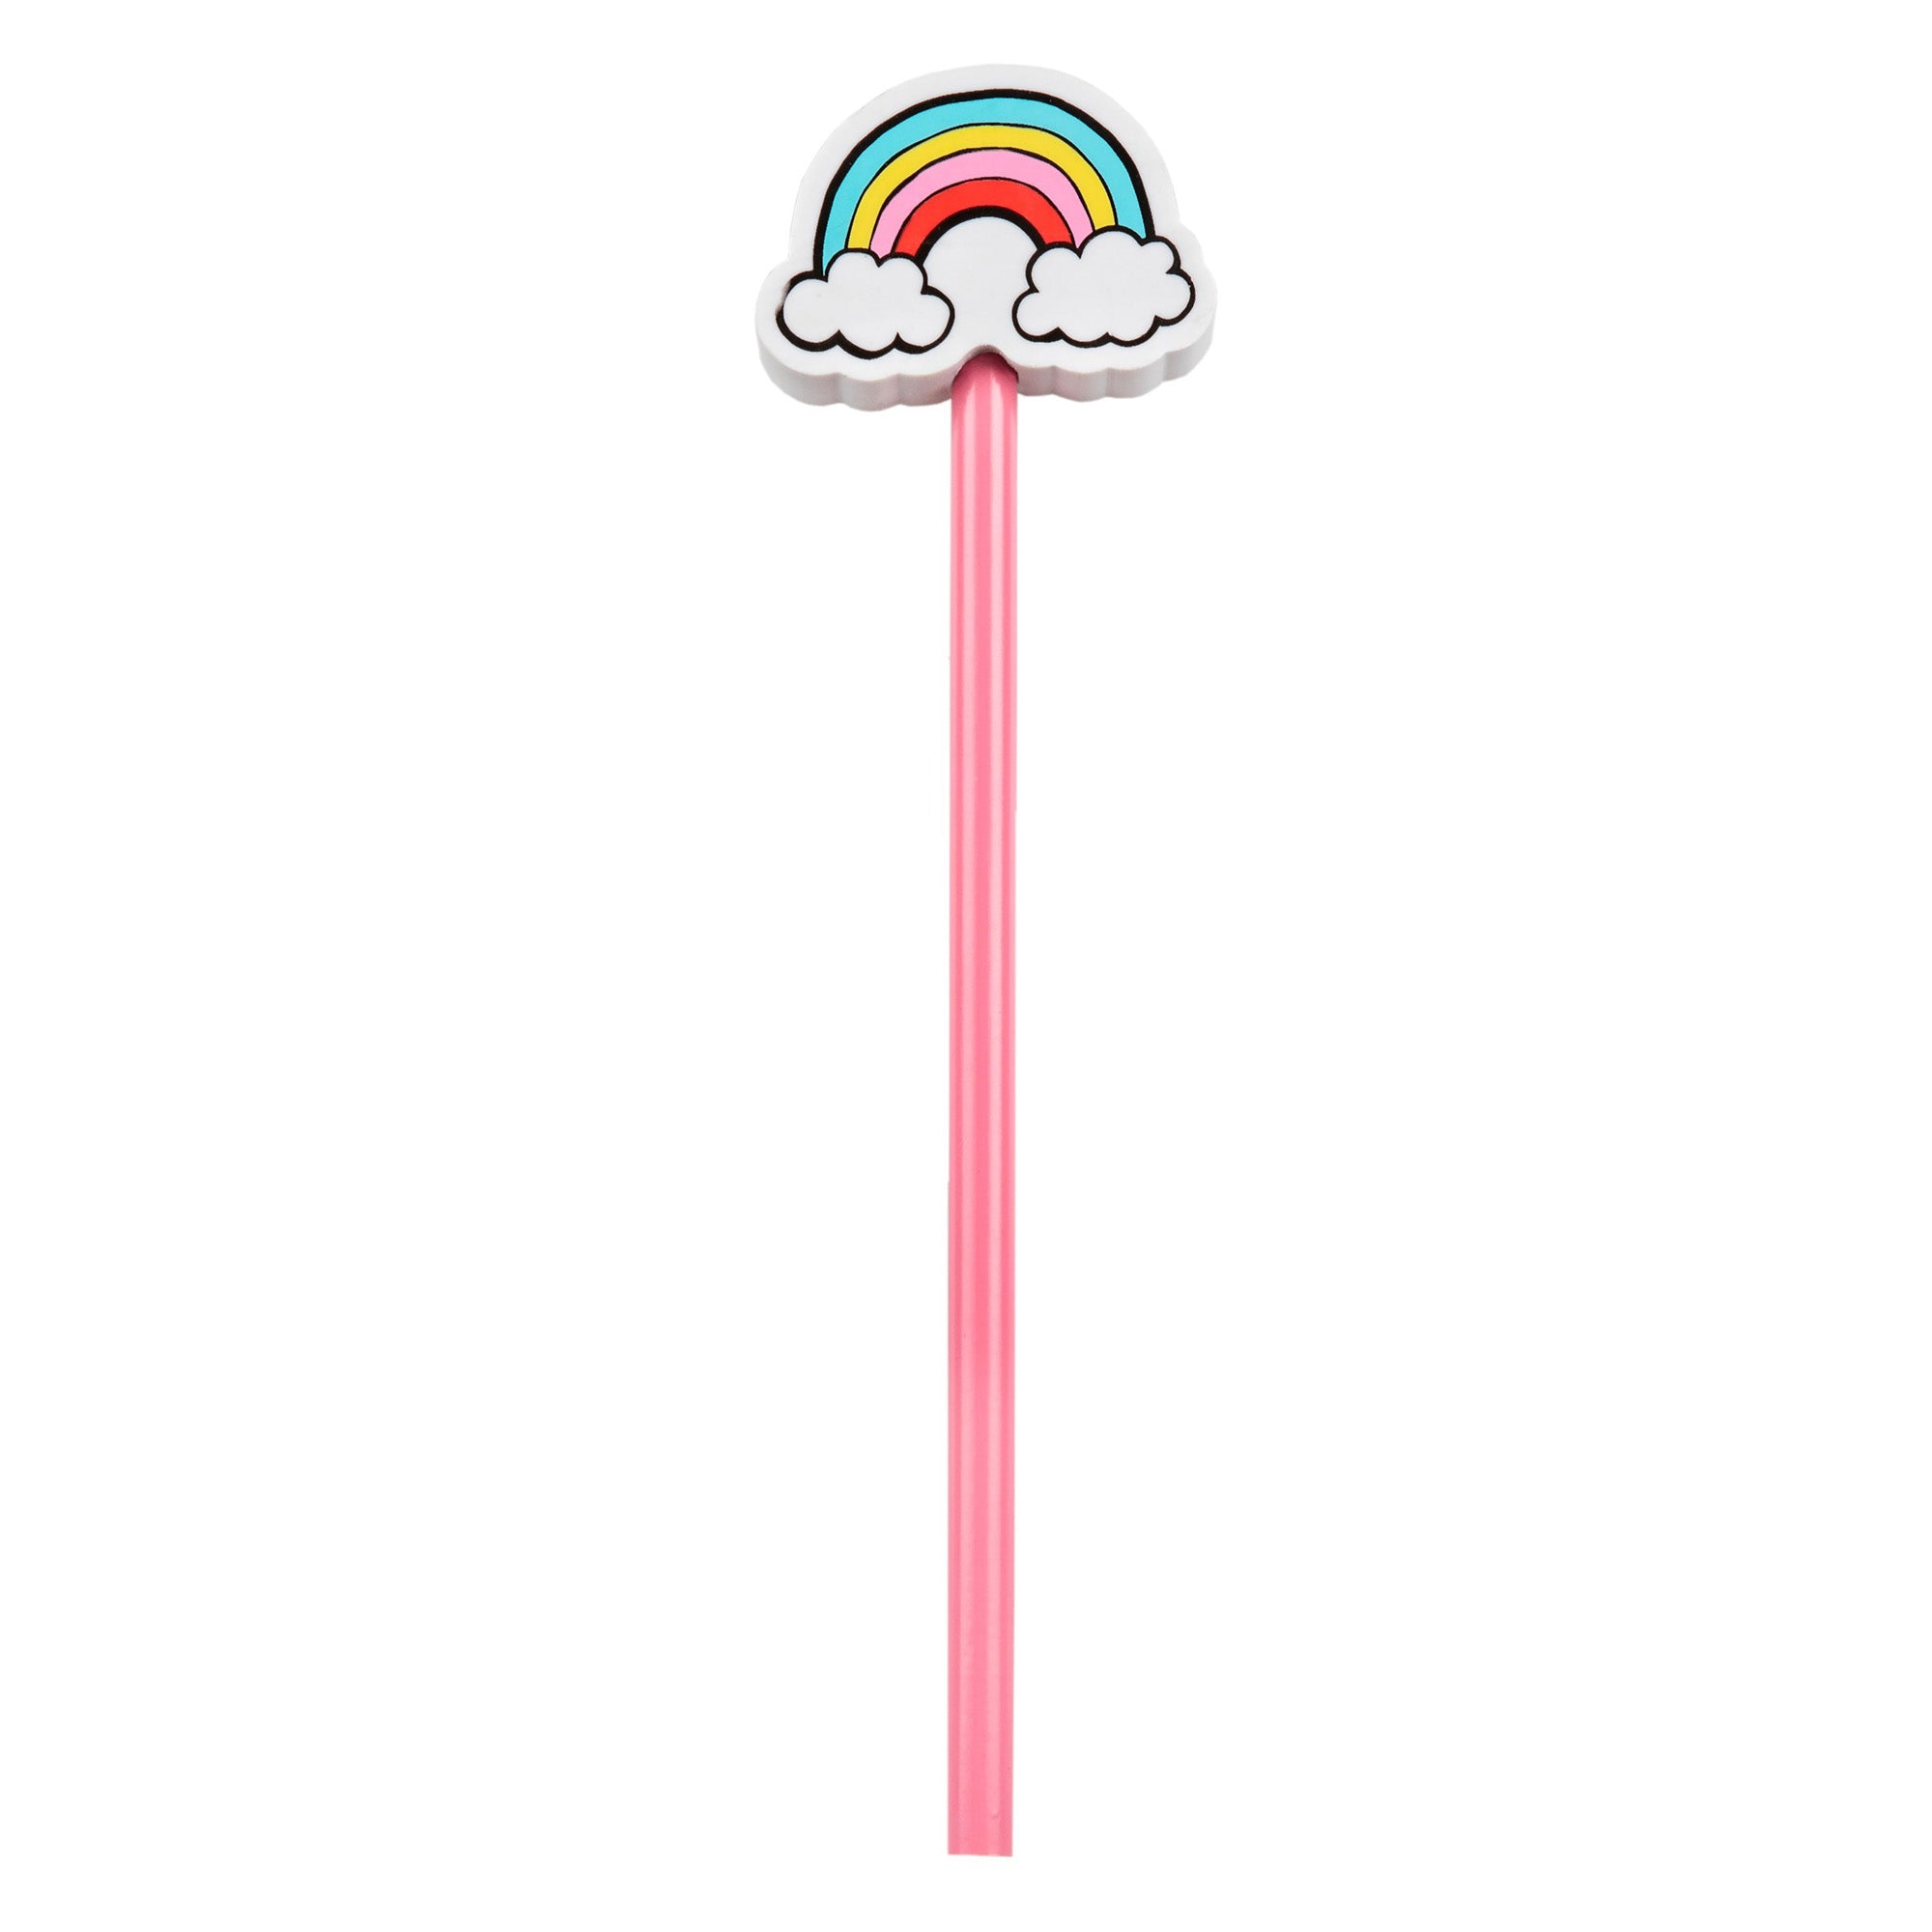 Patches and Pins Pencil with Rainbow Eraser Topper - MissieMay